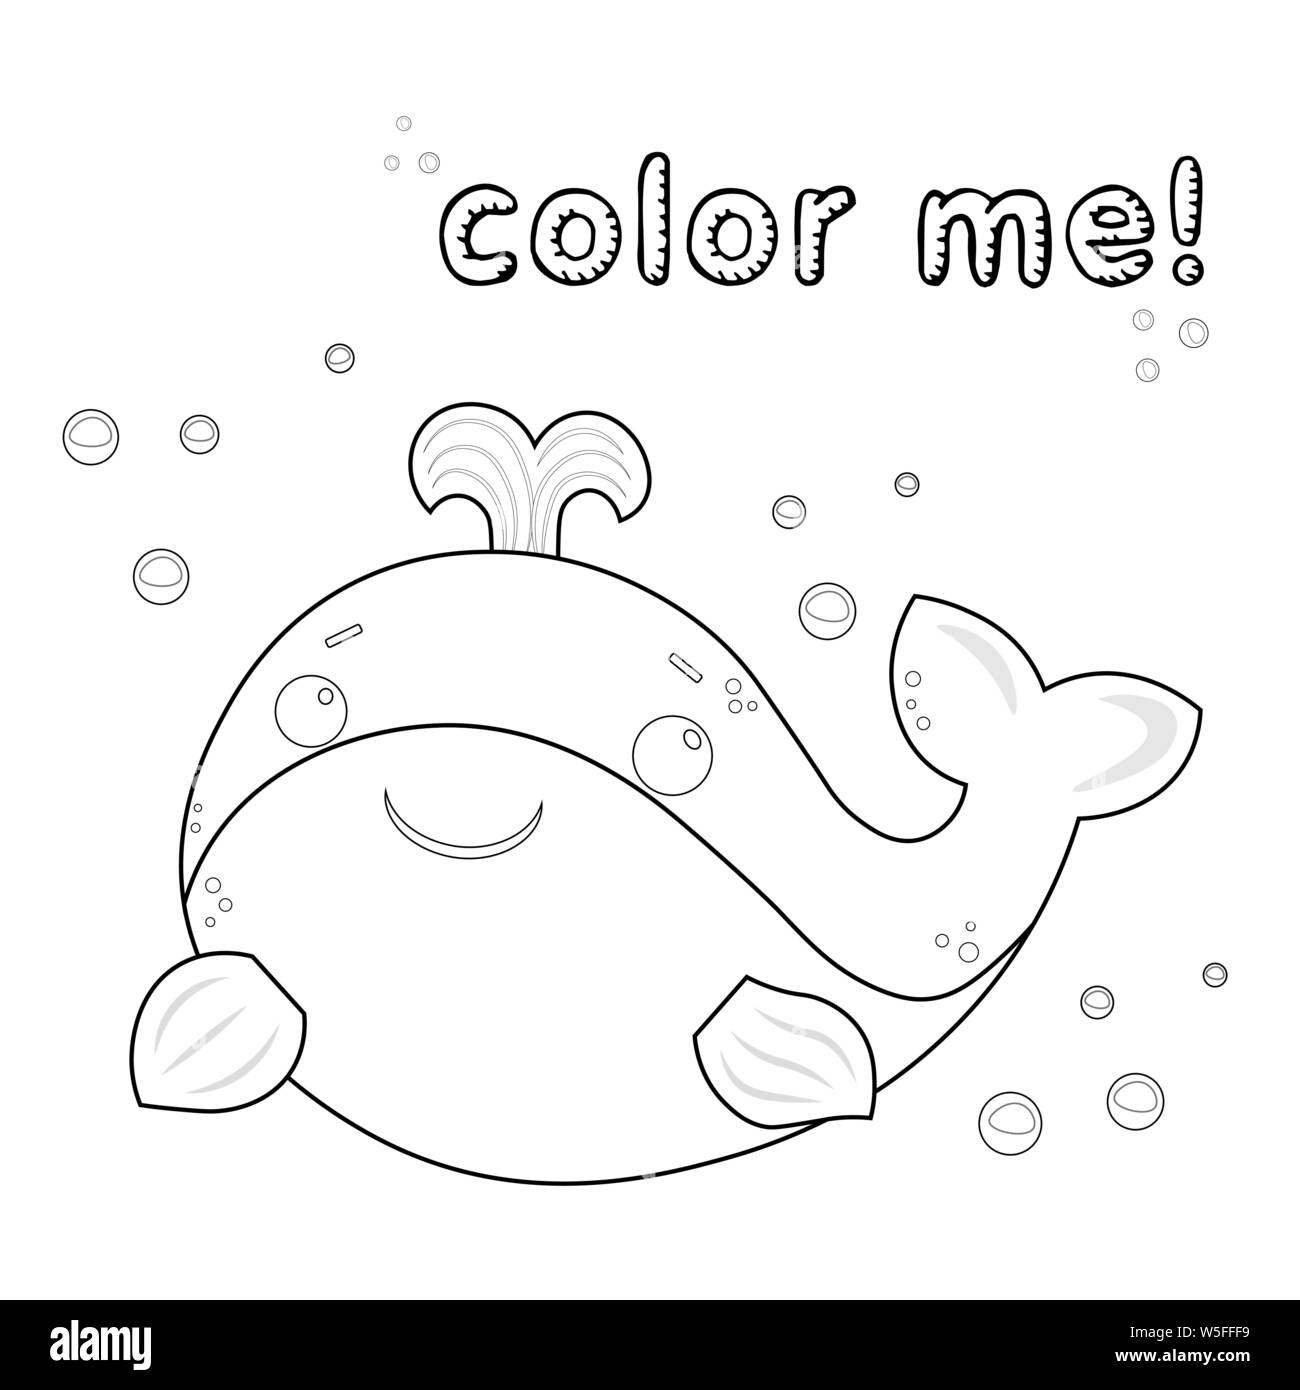 game for kids outline whale coloring page black and white whale cartoon character vector illustration isolated on white background marine animals W5FFF9